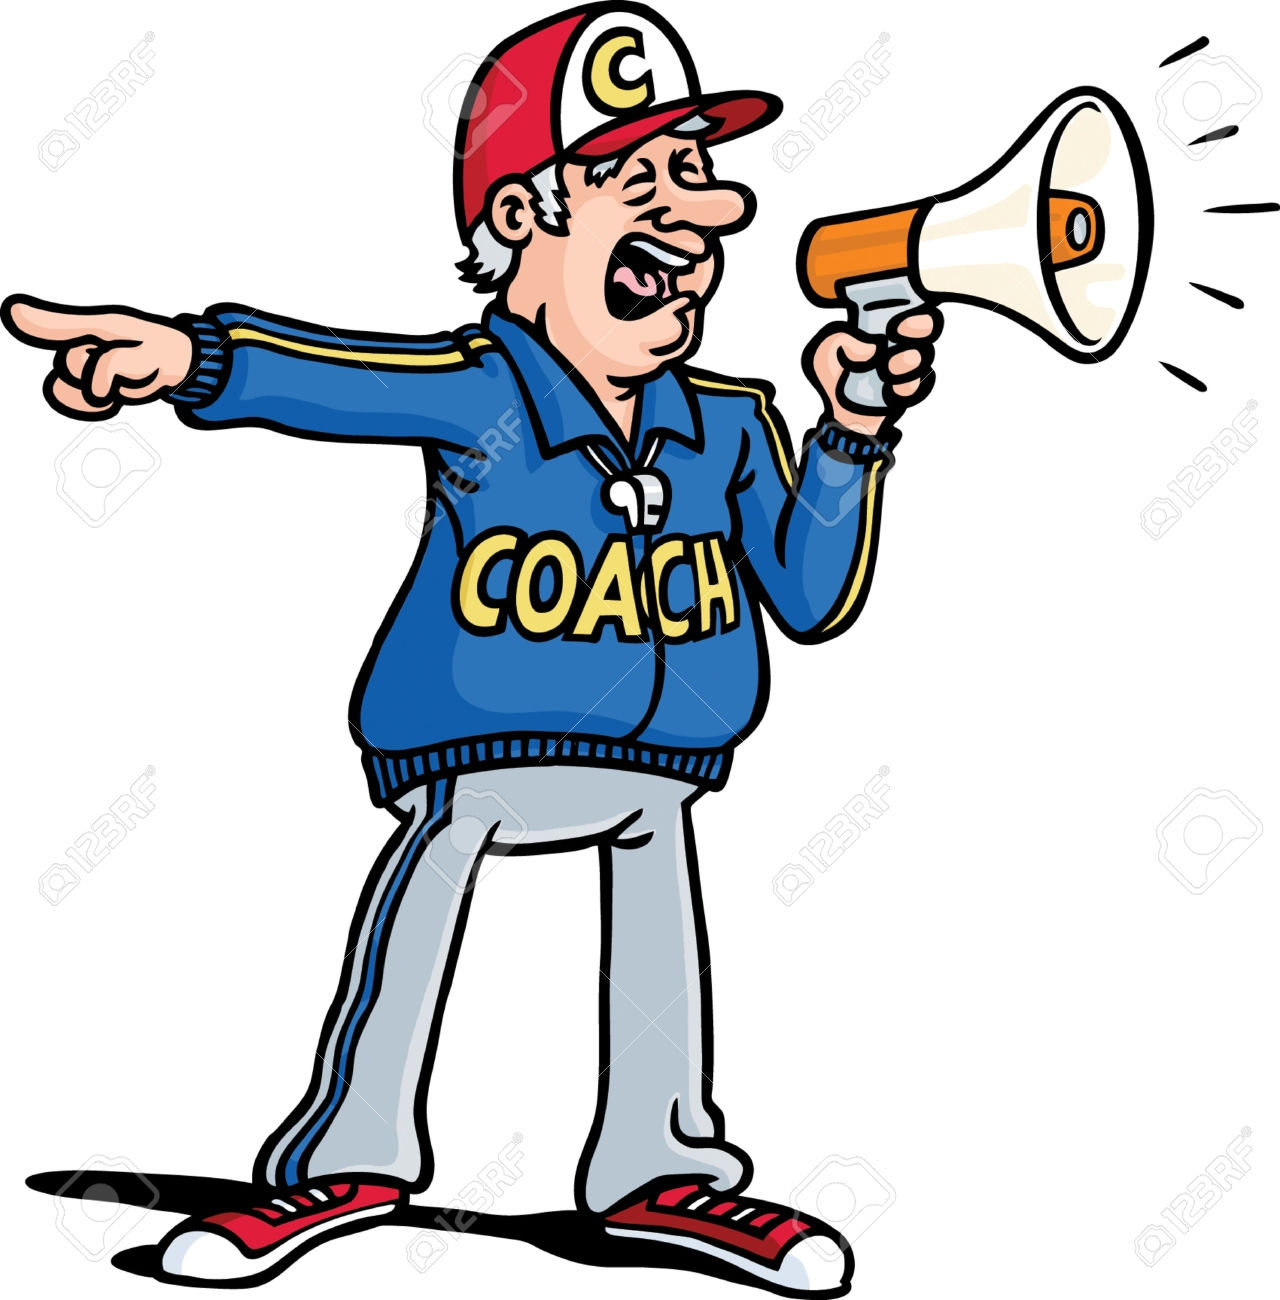 Coach clipart. Fresh gallery digital collection